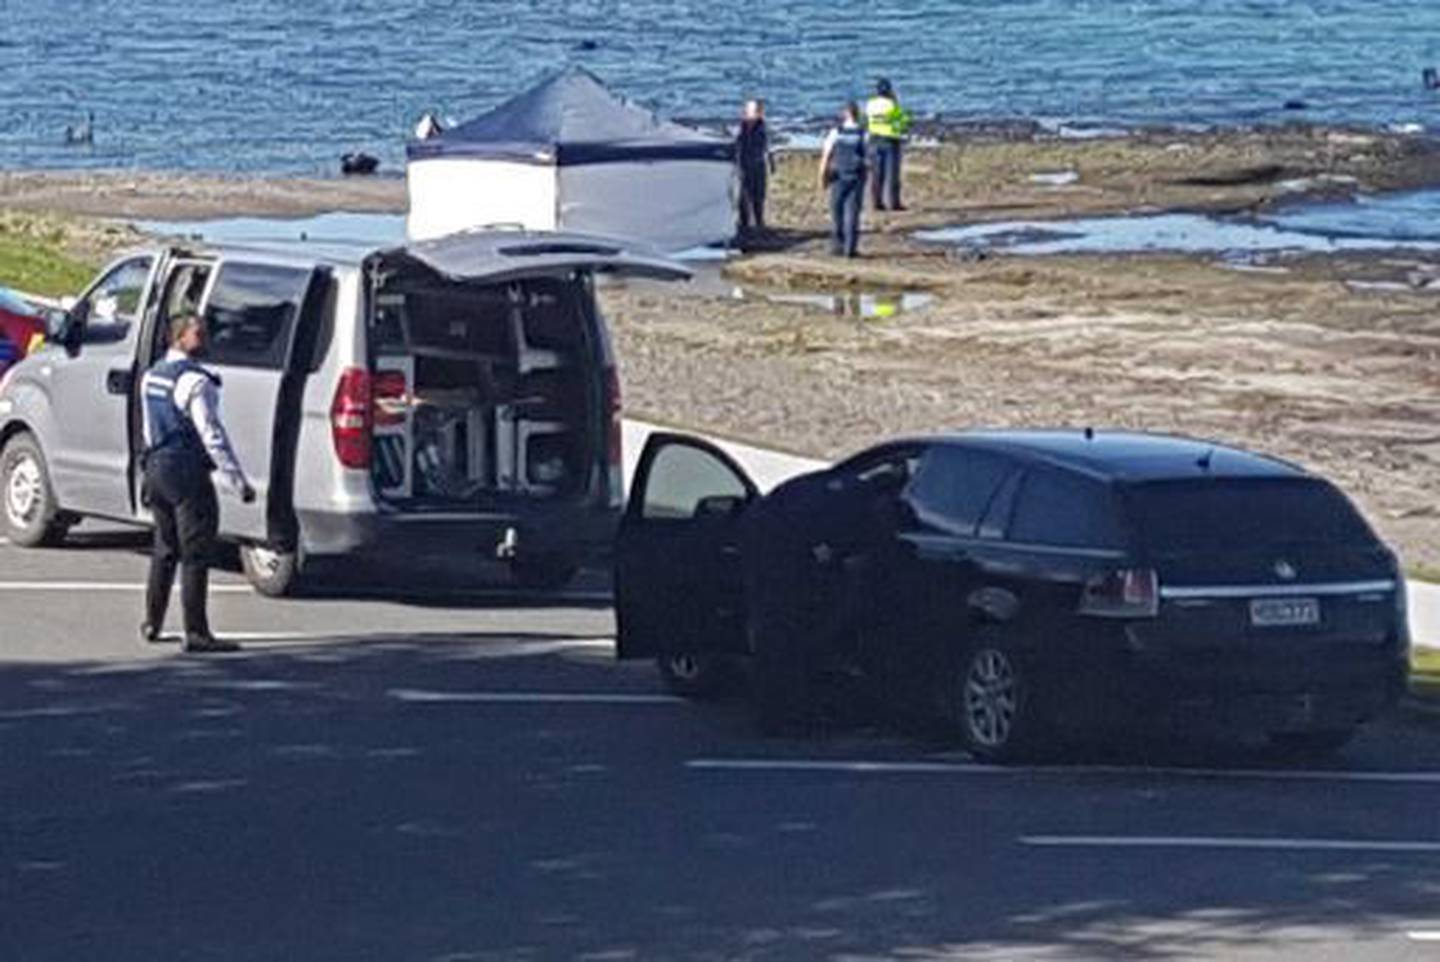 Police at the scene where the two bodies were discovered. Photo: Laurilee McMichael/NZ Herald